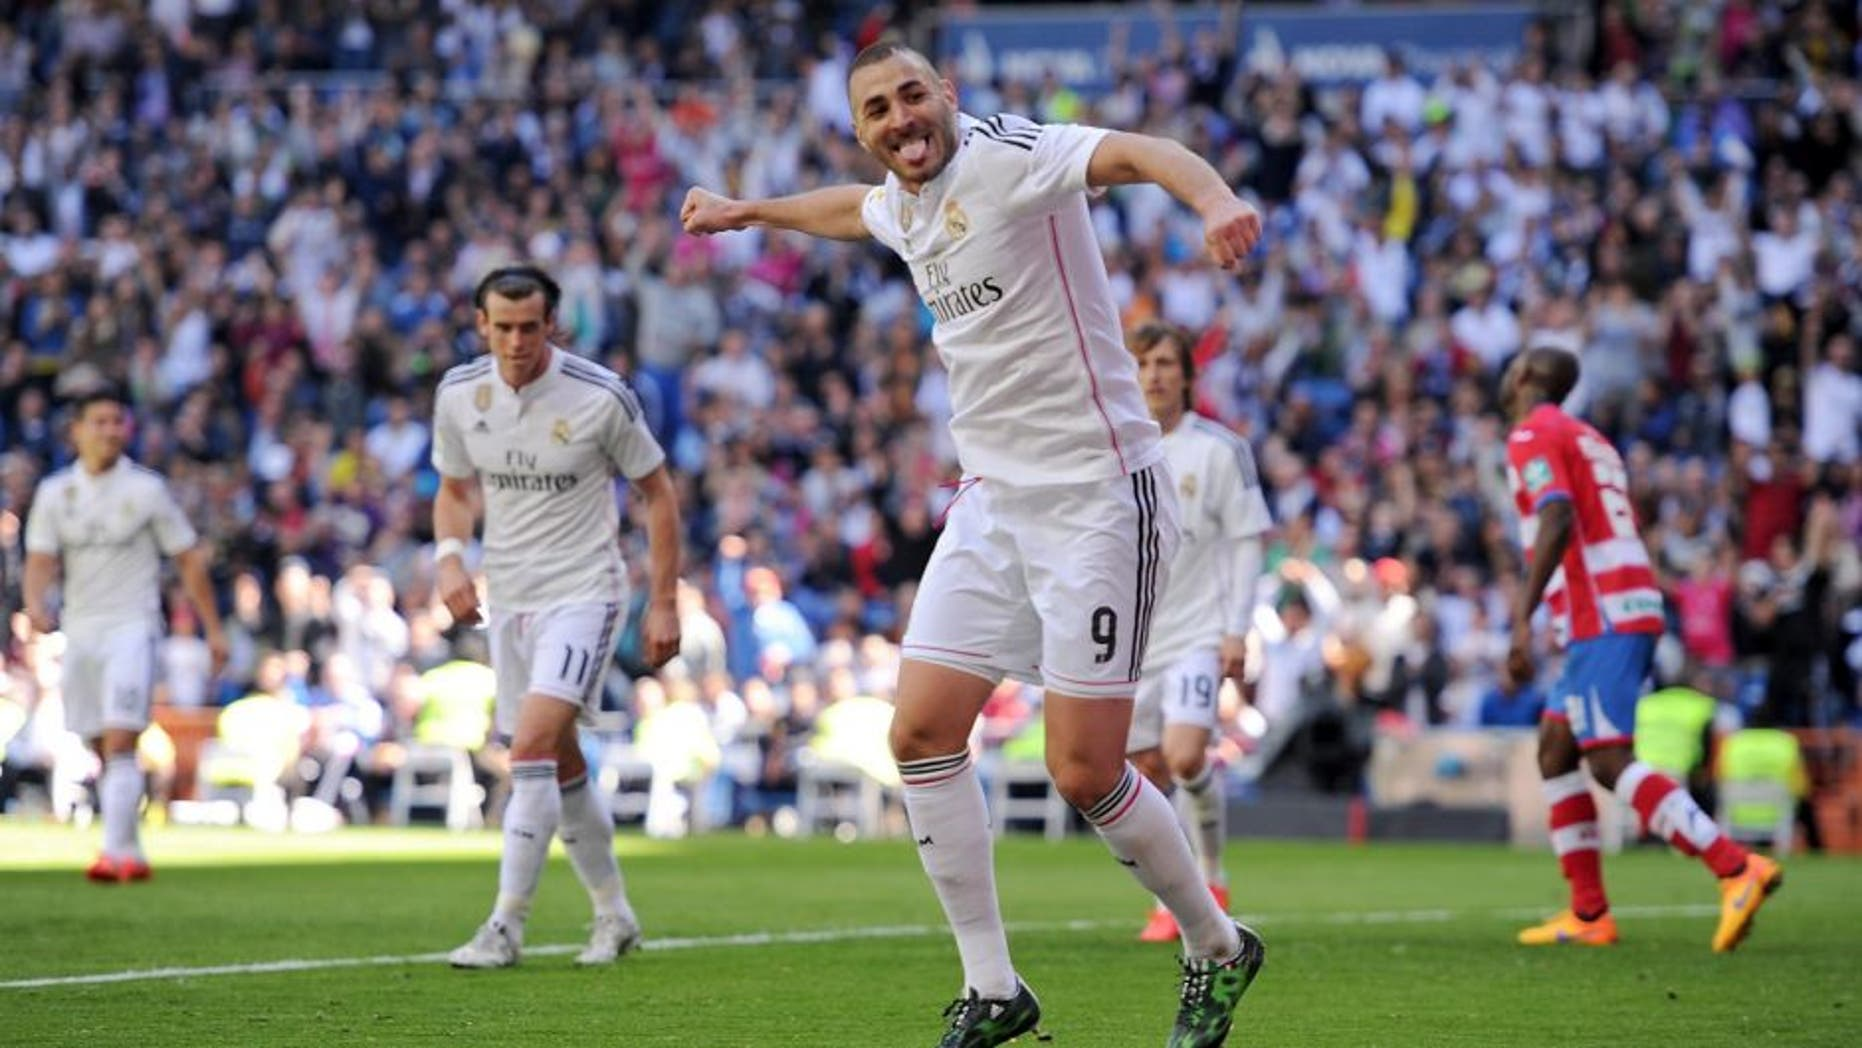 MADRID, SPAIN - APRIL 05: Karim Benzema of Real Madrid CF celebrates after scoring his team's 7th goal during the La Liga match between Real Madrid CF and Granada CF at Estadio Santiago Bernabeu on April 5, 2015 in Madrid, Spain. (Photo by Denis Doyle/Getty Images)